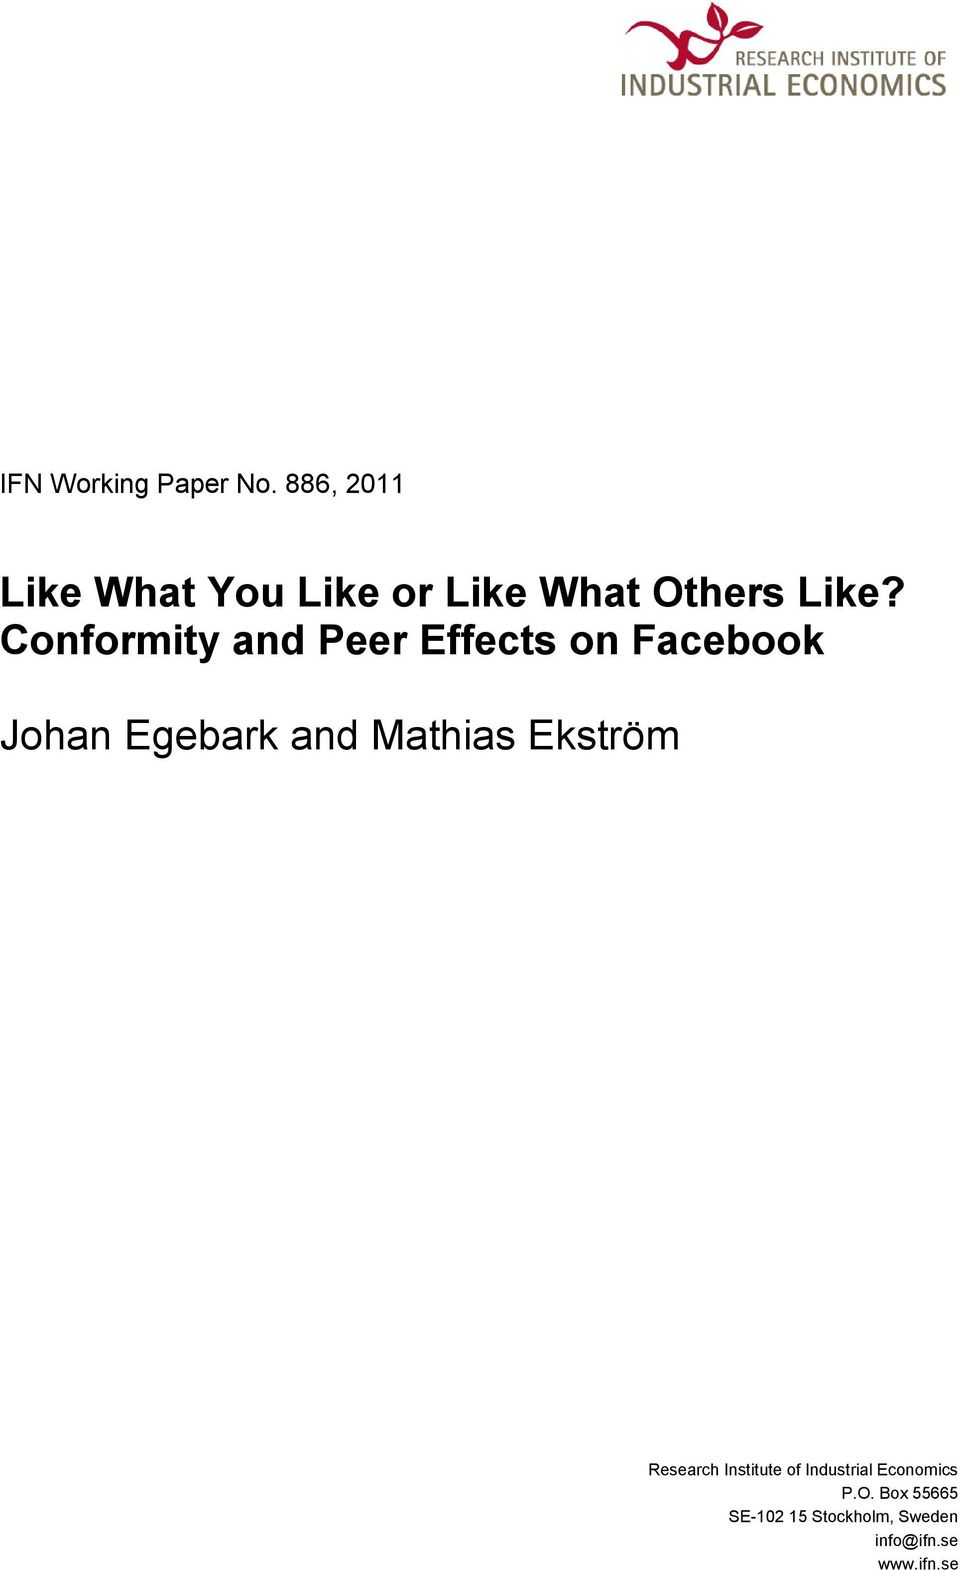 Conformity and Peer Effects on Facebook Johan Egebark and